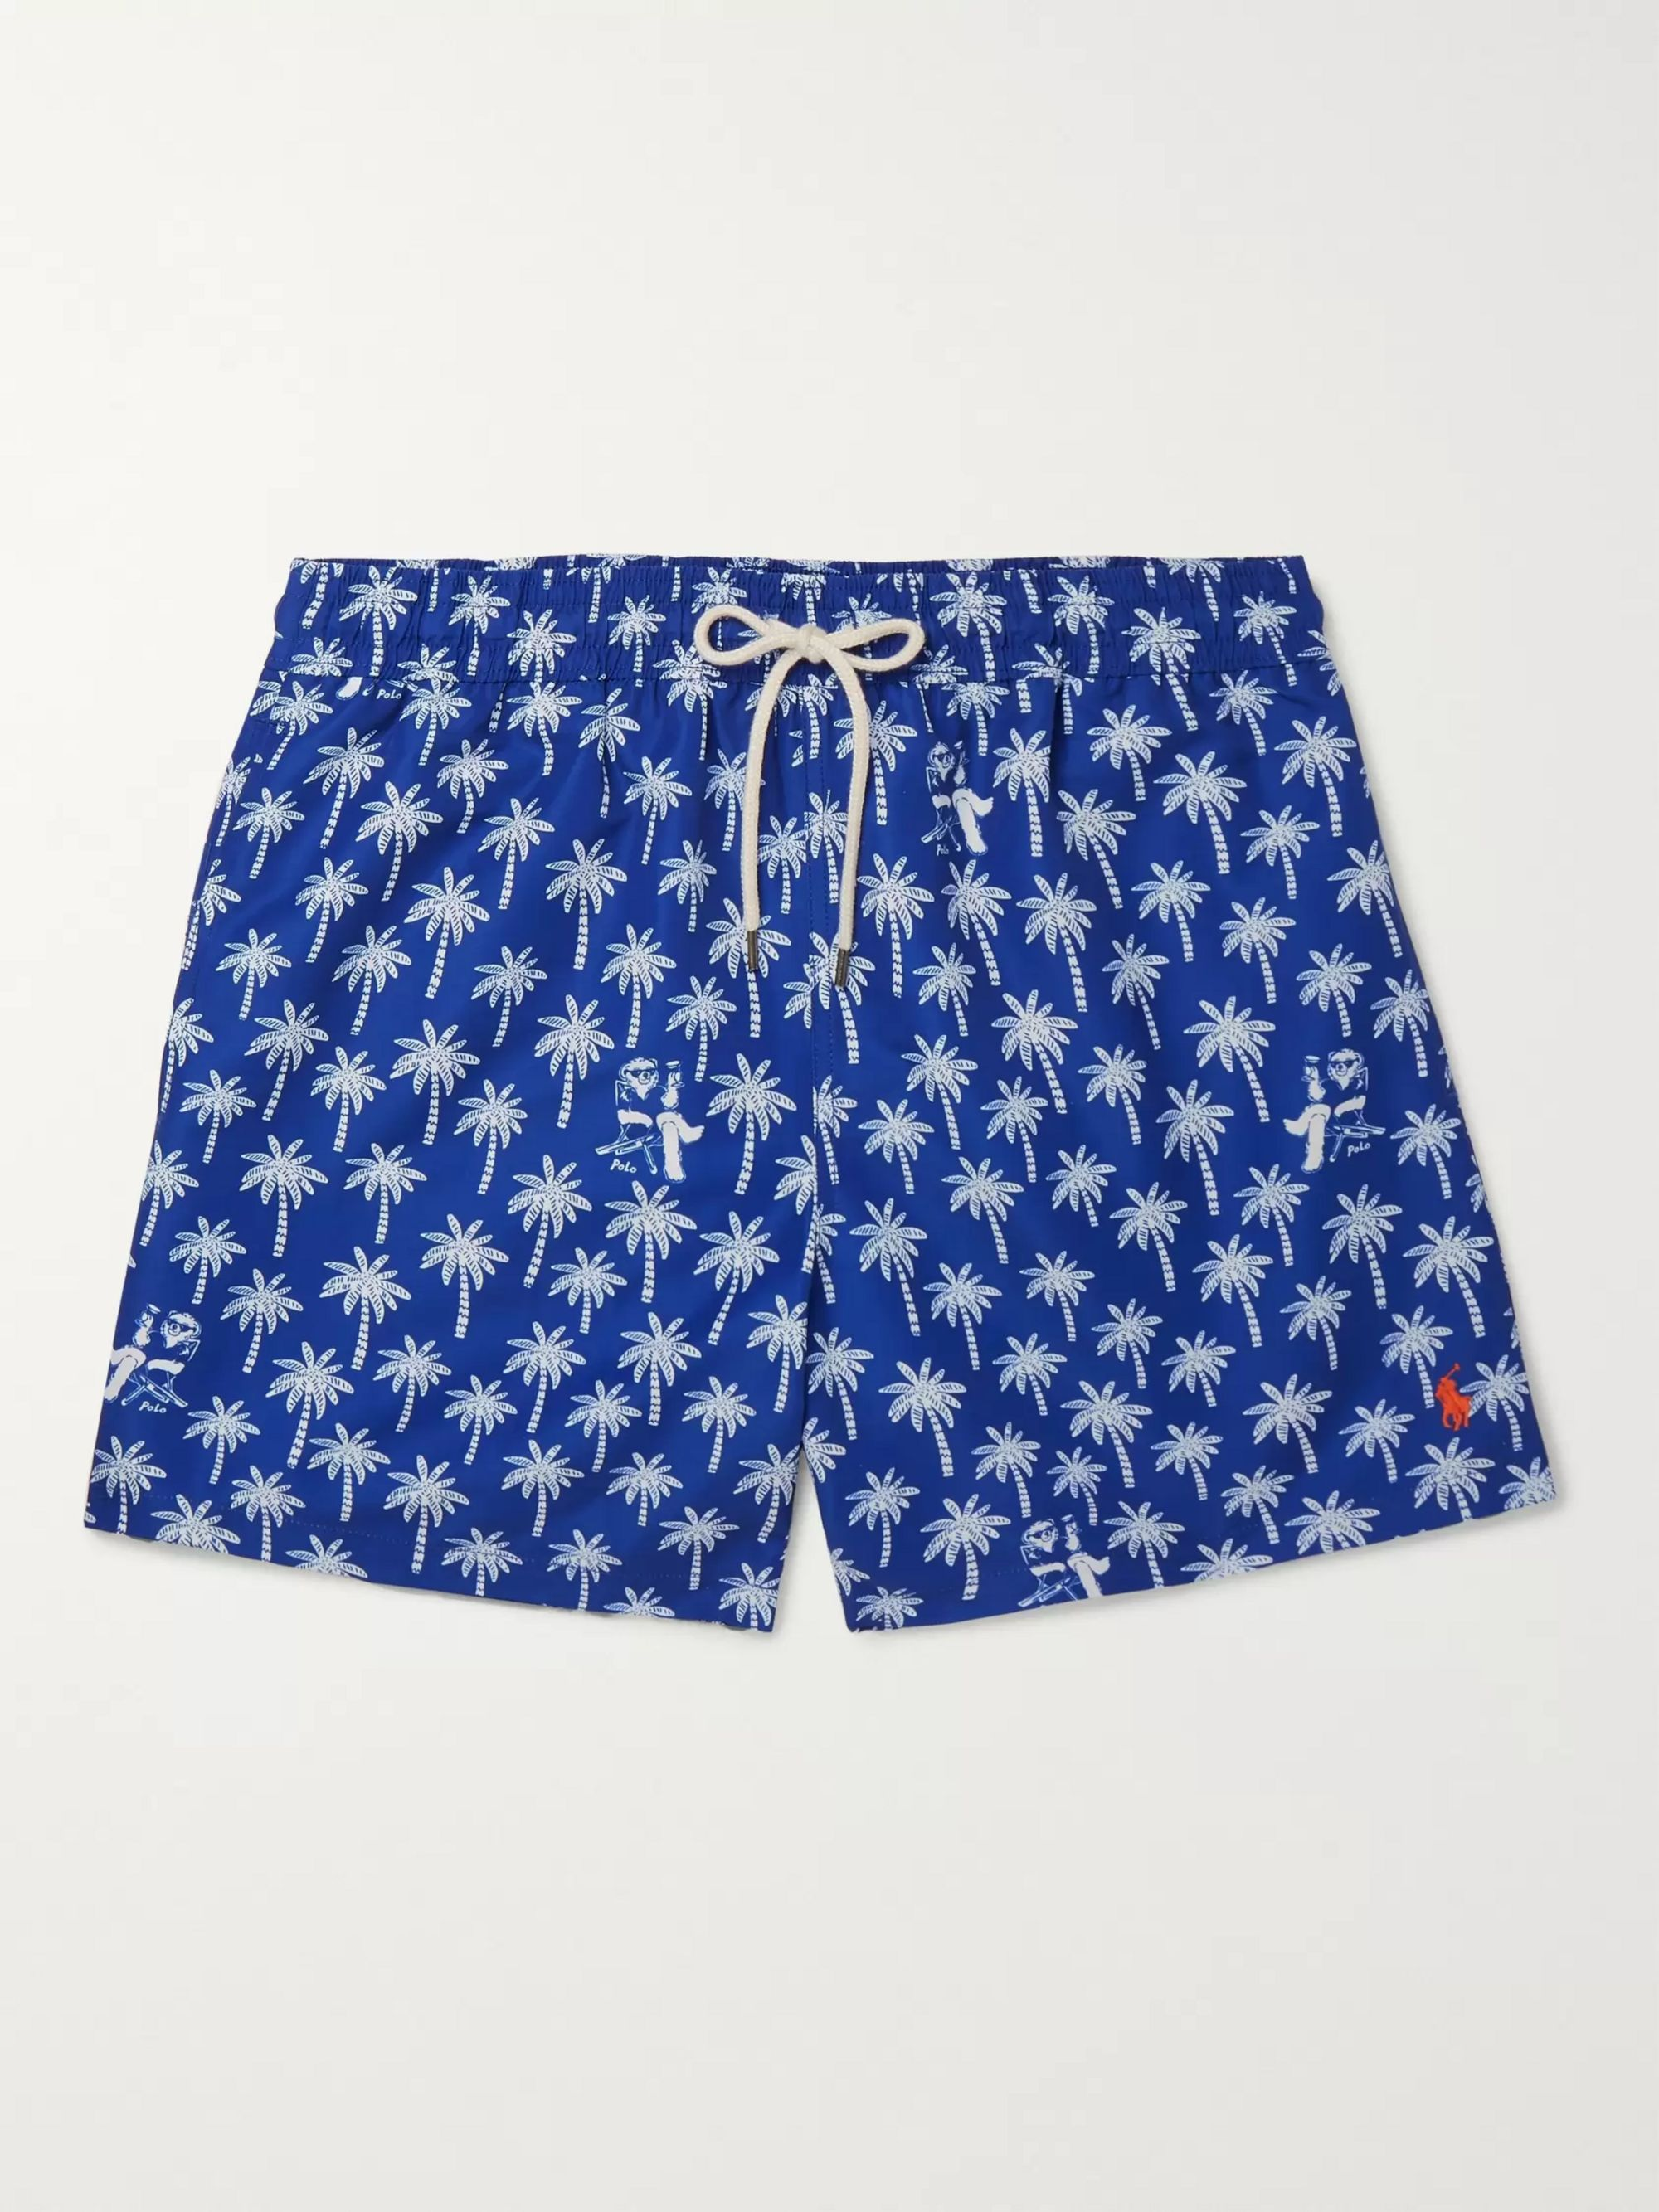 Polo Ralph Lauren Printed Mid-Length Swim Shorts